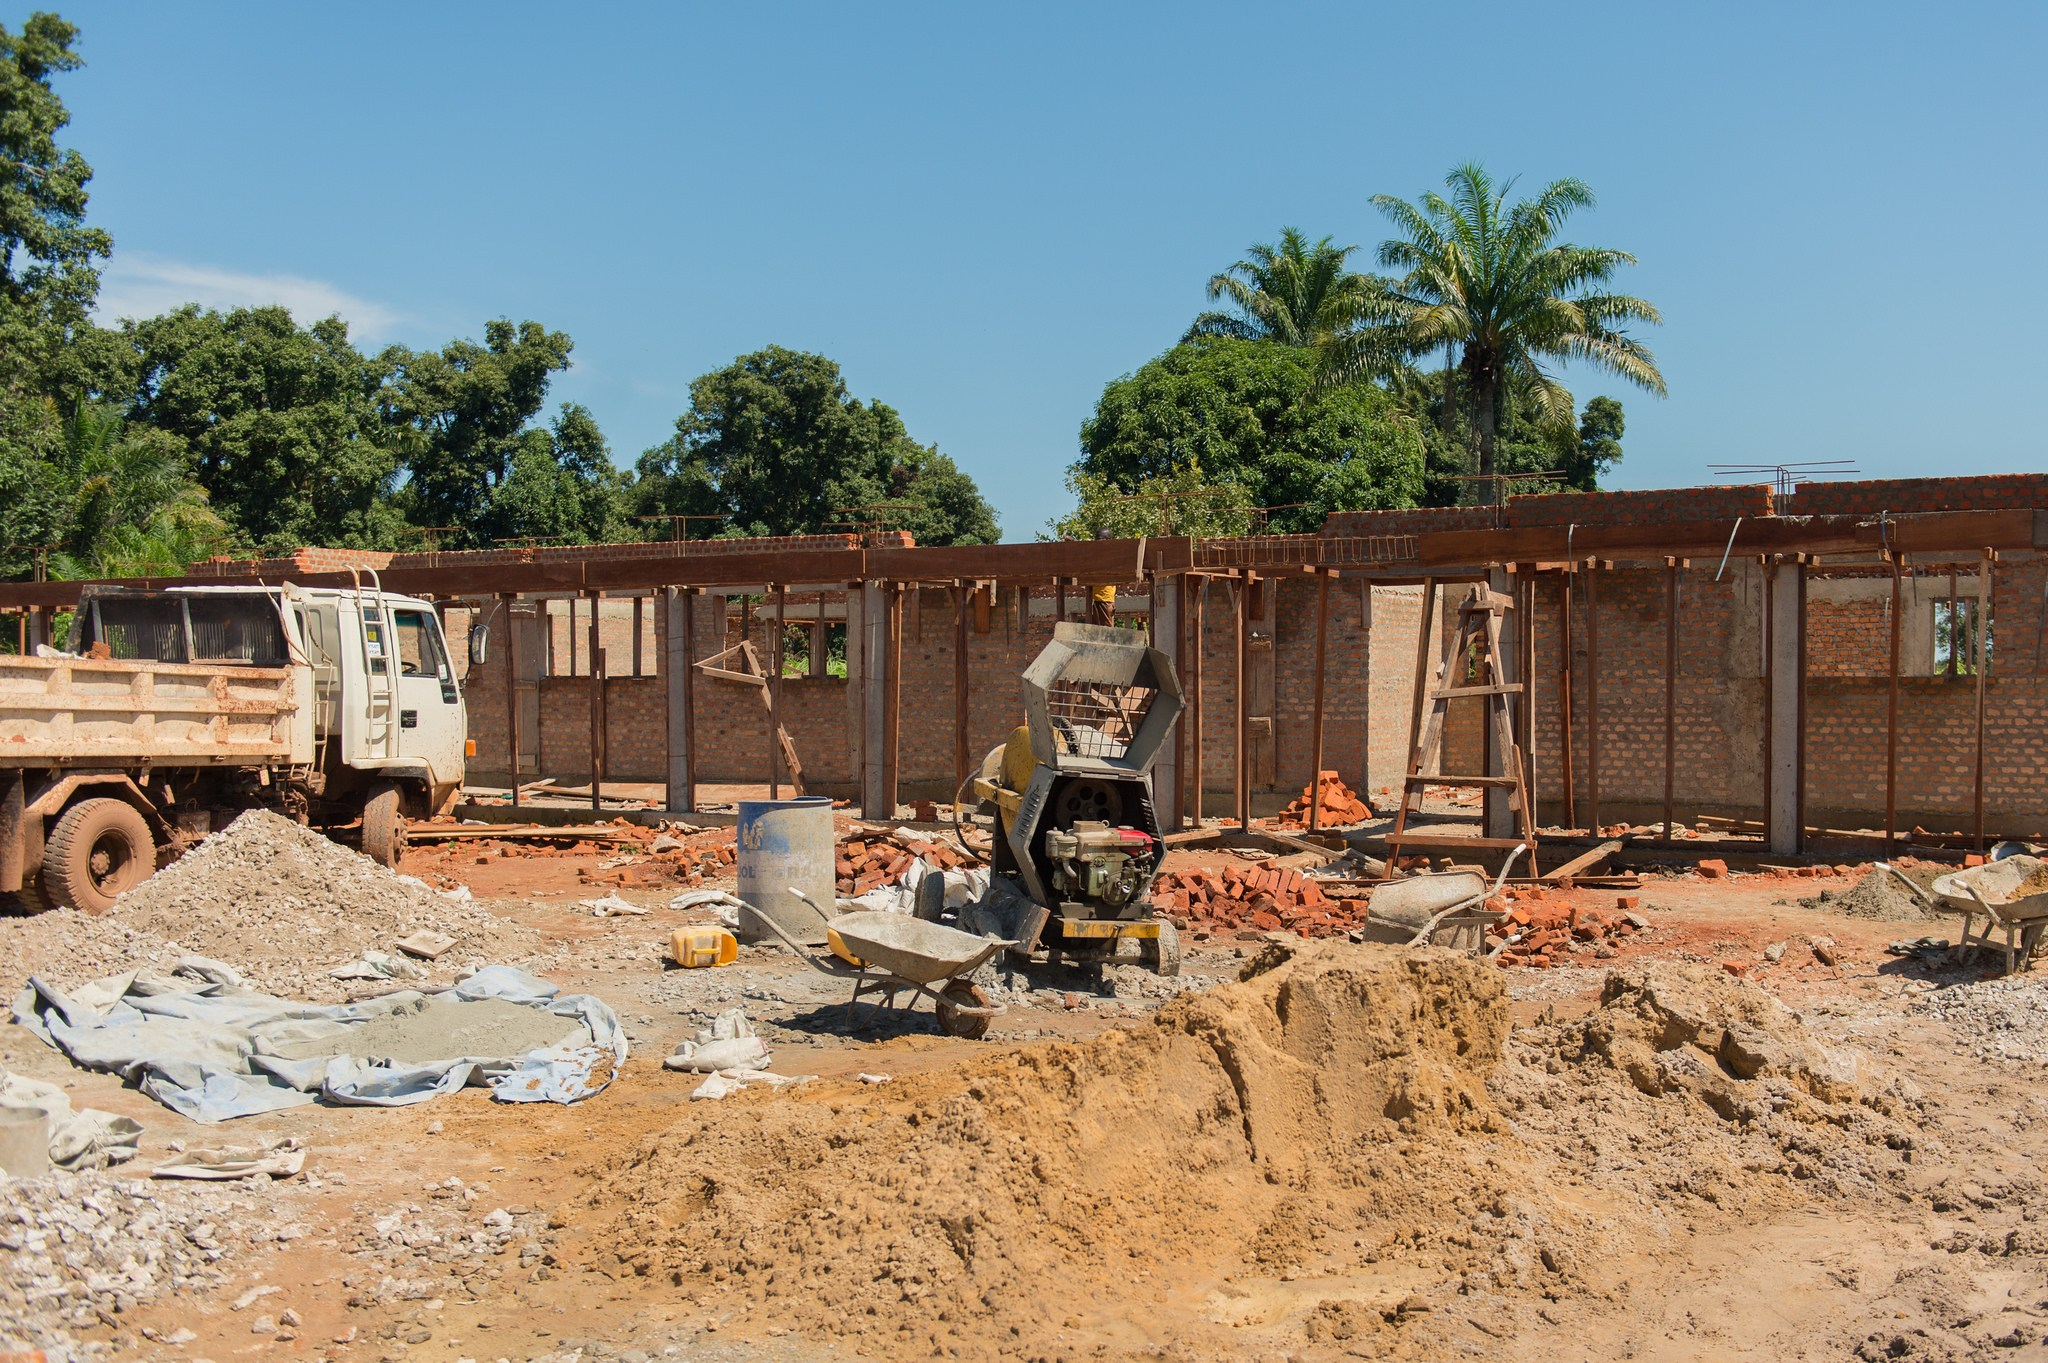 The construction of the new surgical unit is well underway at St. Theresa Hospital in South Sudan.